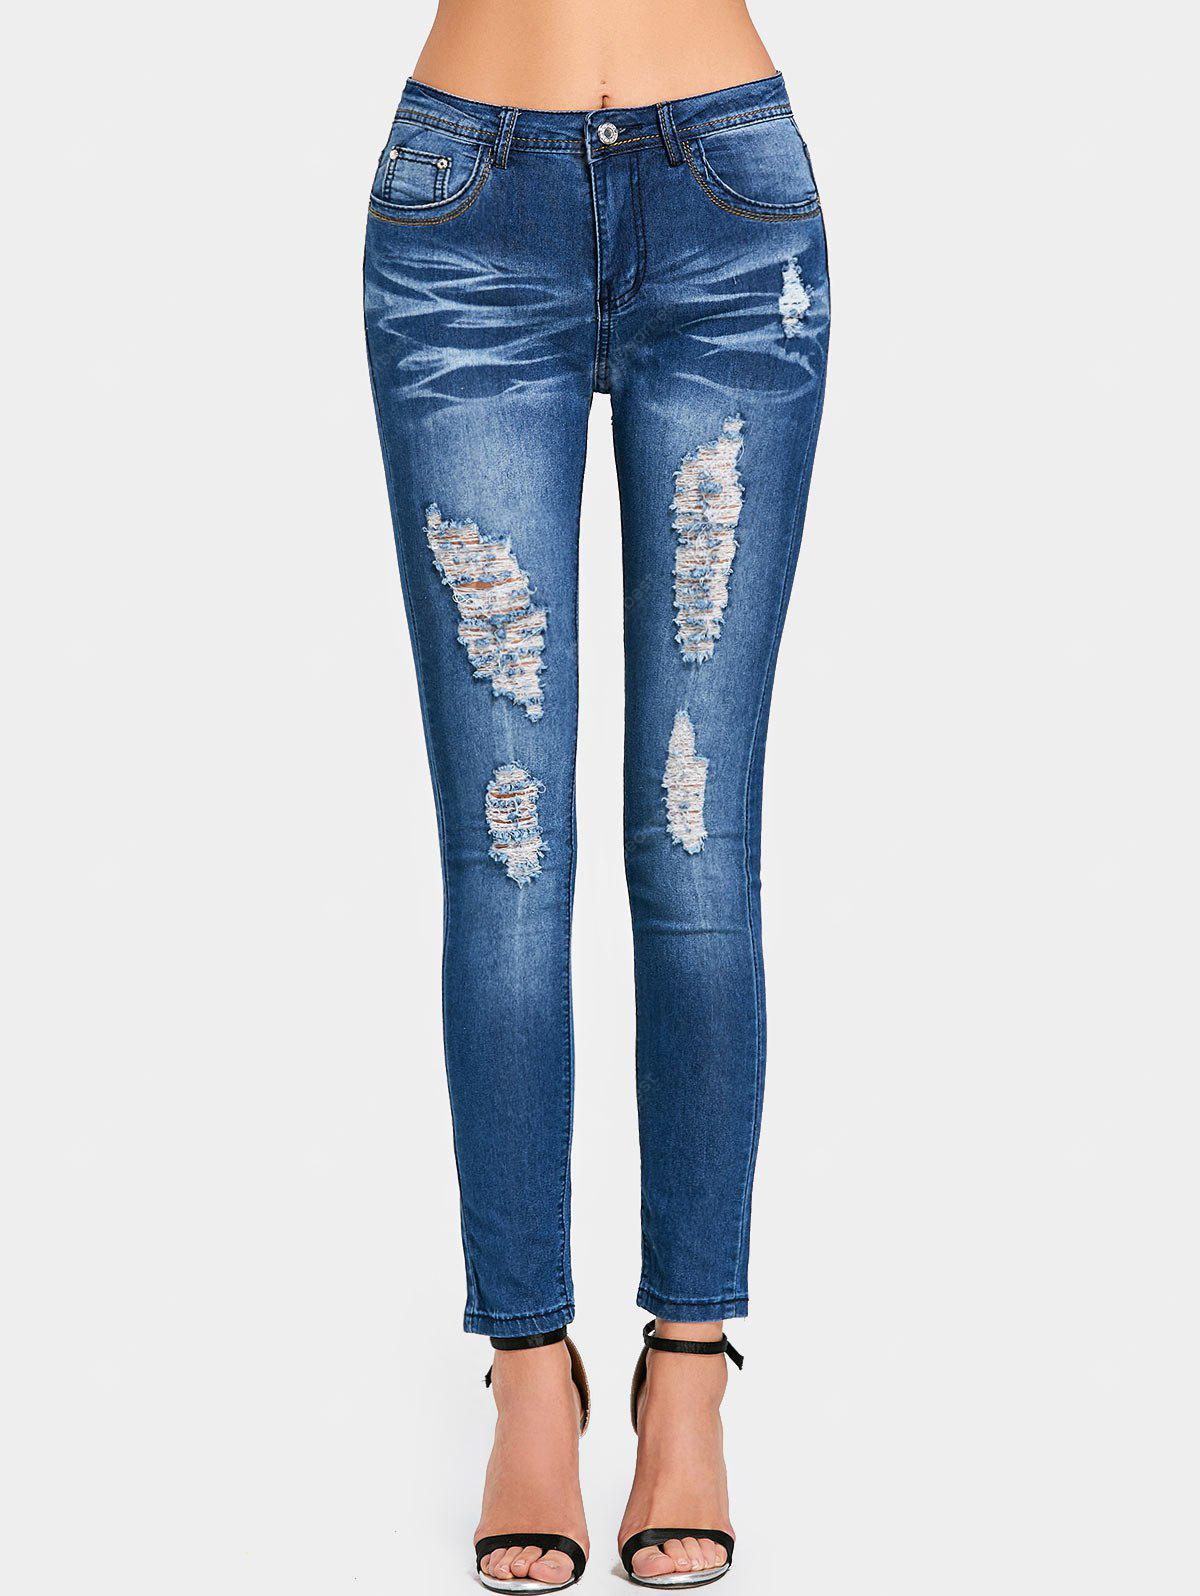 High Rise Pockets Ripped Jeans